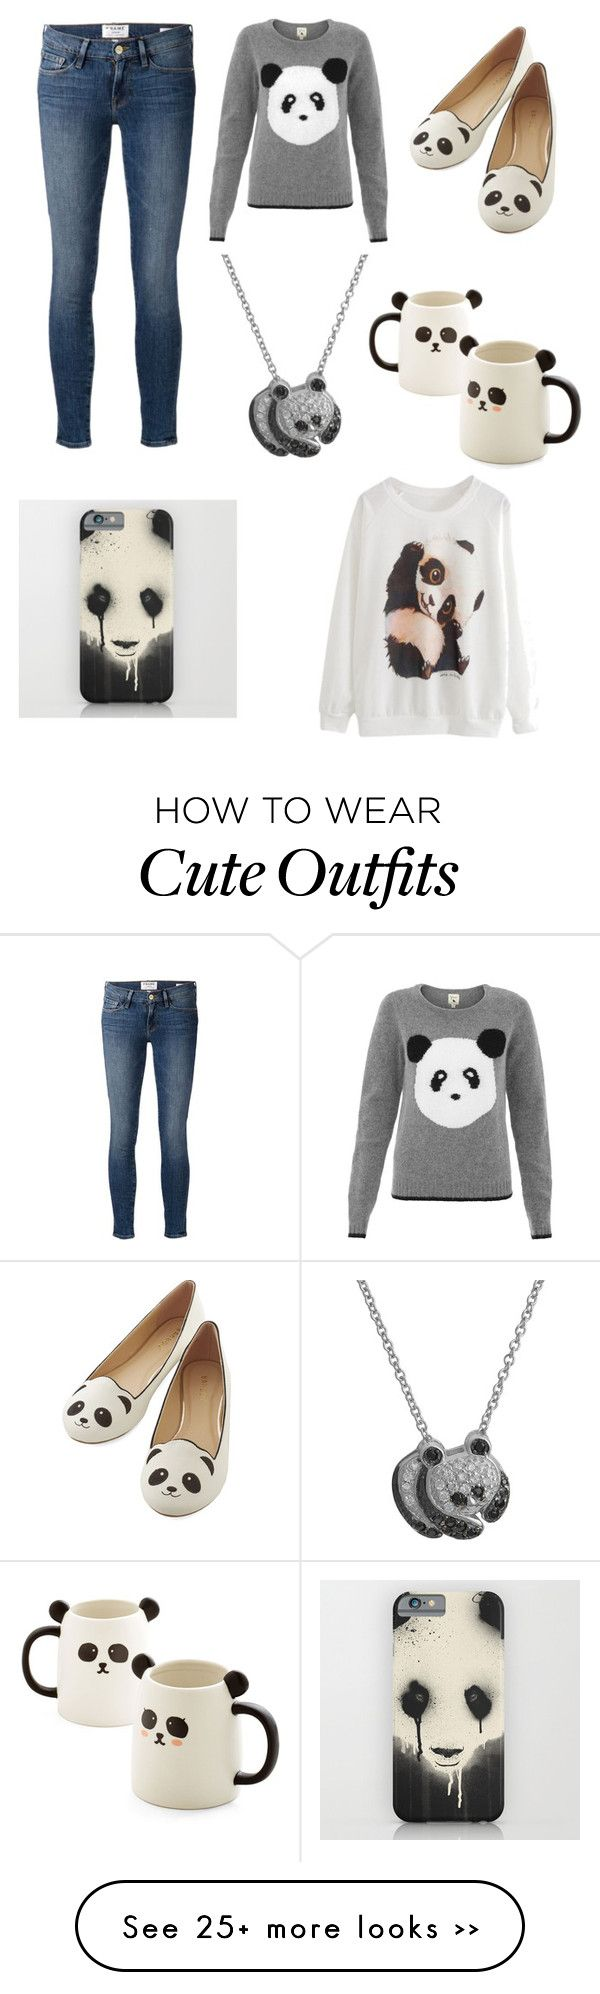 """""""Panda outfit"""" by haleighmillard on Polyvore"""